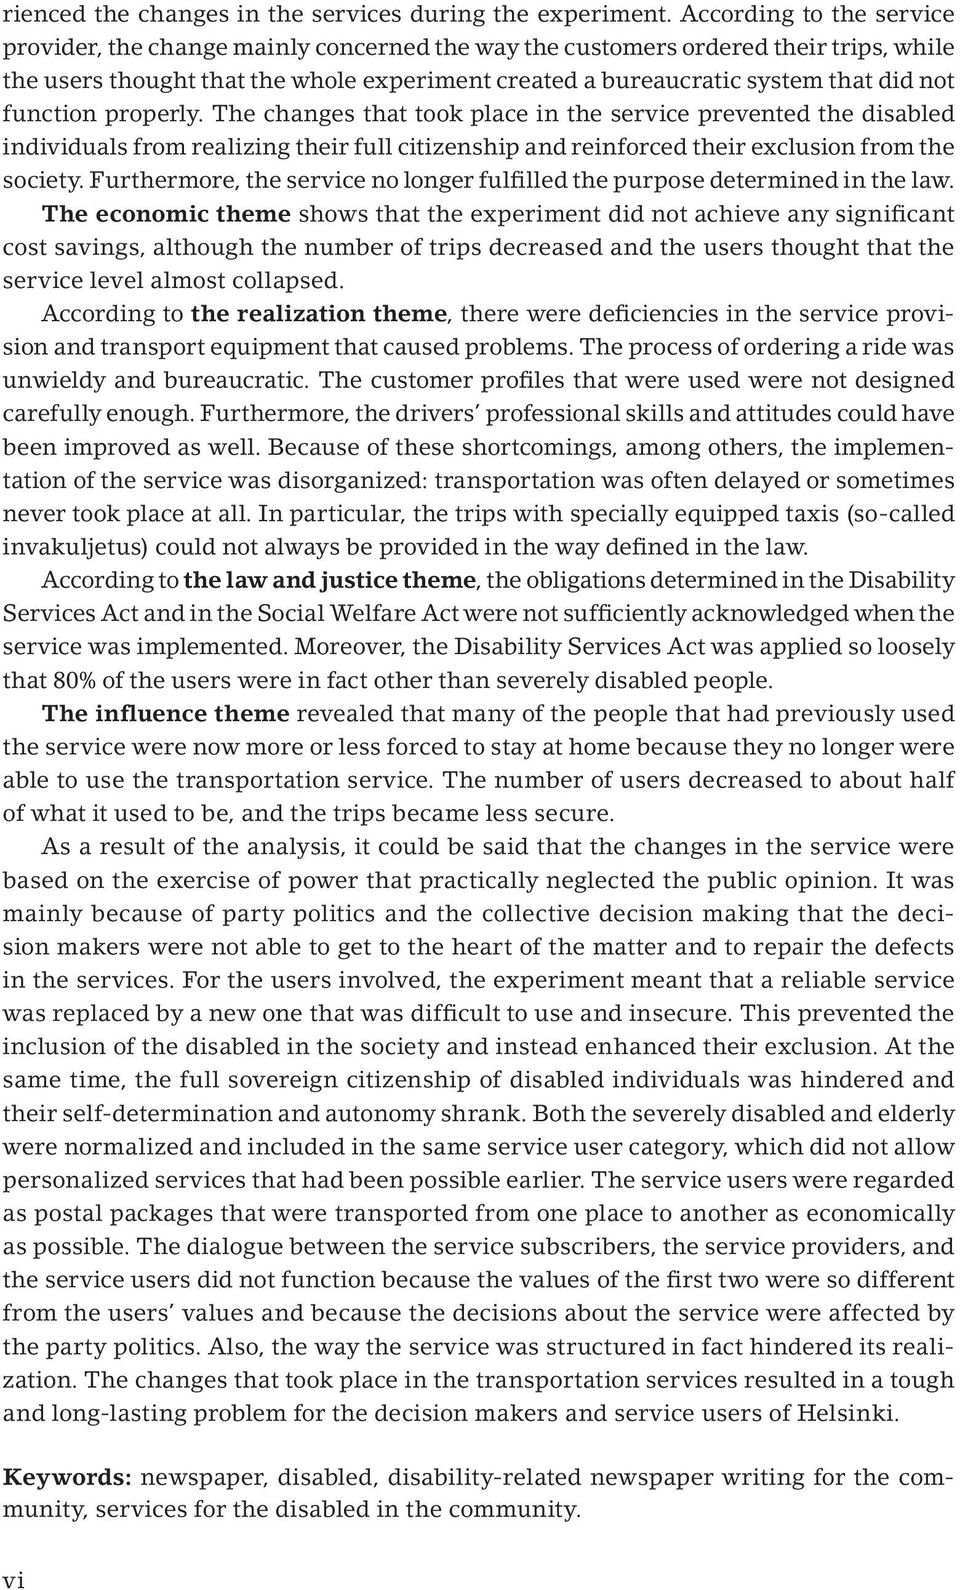 function properly. The changes that took place in the service prevented the disabled individuals from realizing their full citizenship and reinforced their exclusion from the society.